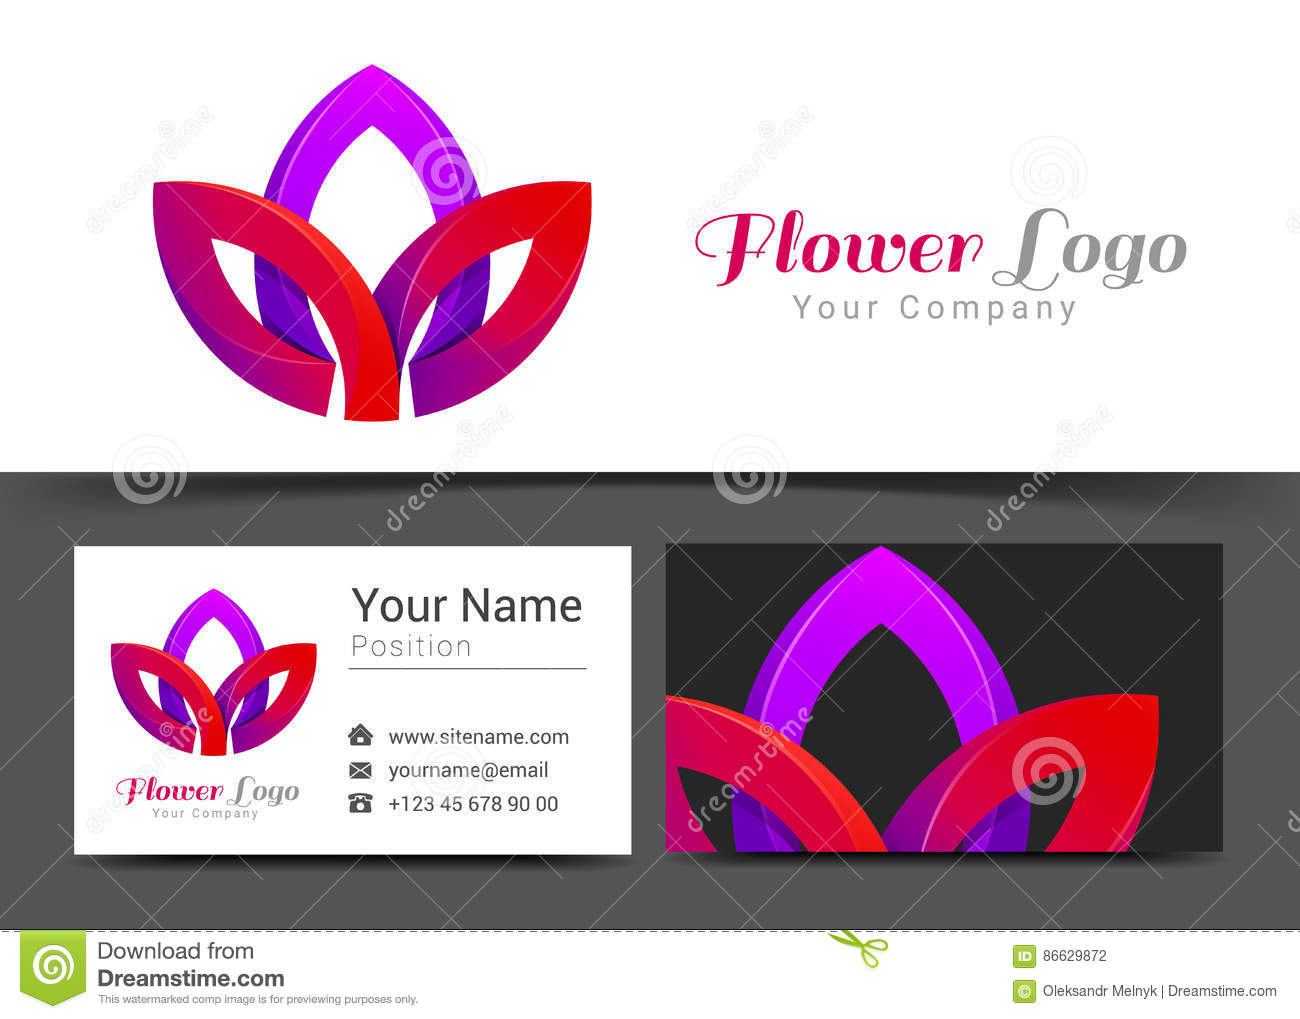 Lotus Flower Corporate Logo Et Calibre De Signe Carte Visite Professionnelle